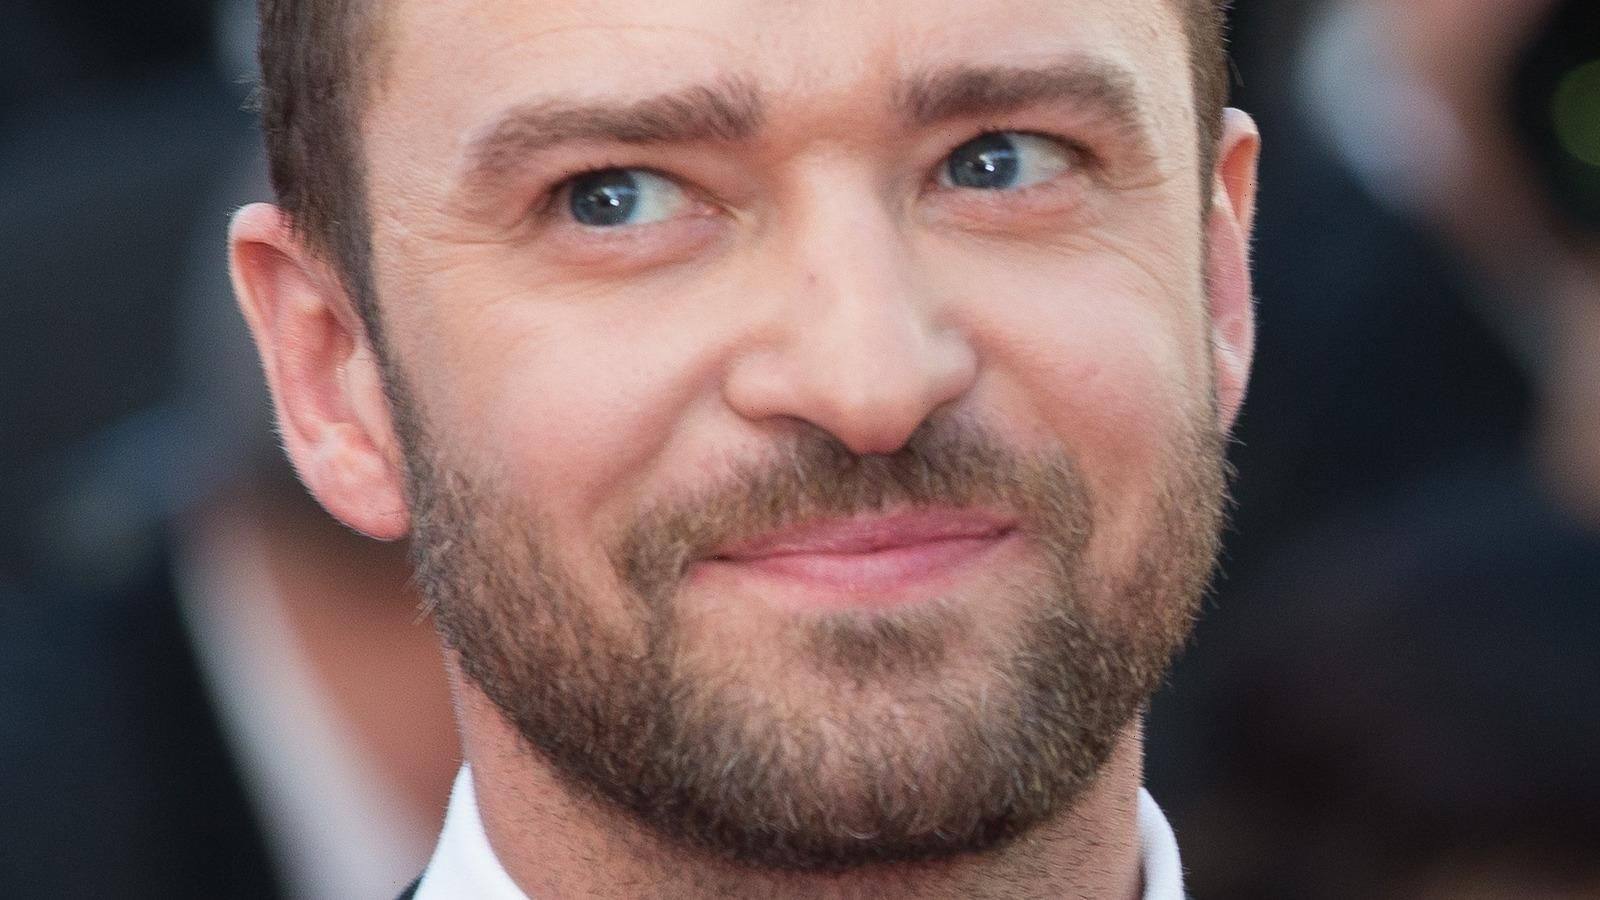 How Justin Timberlake's Son Really Feels About His Music